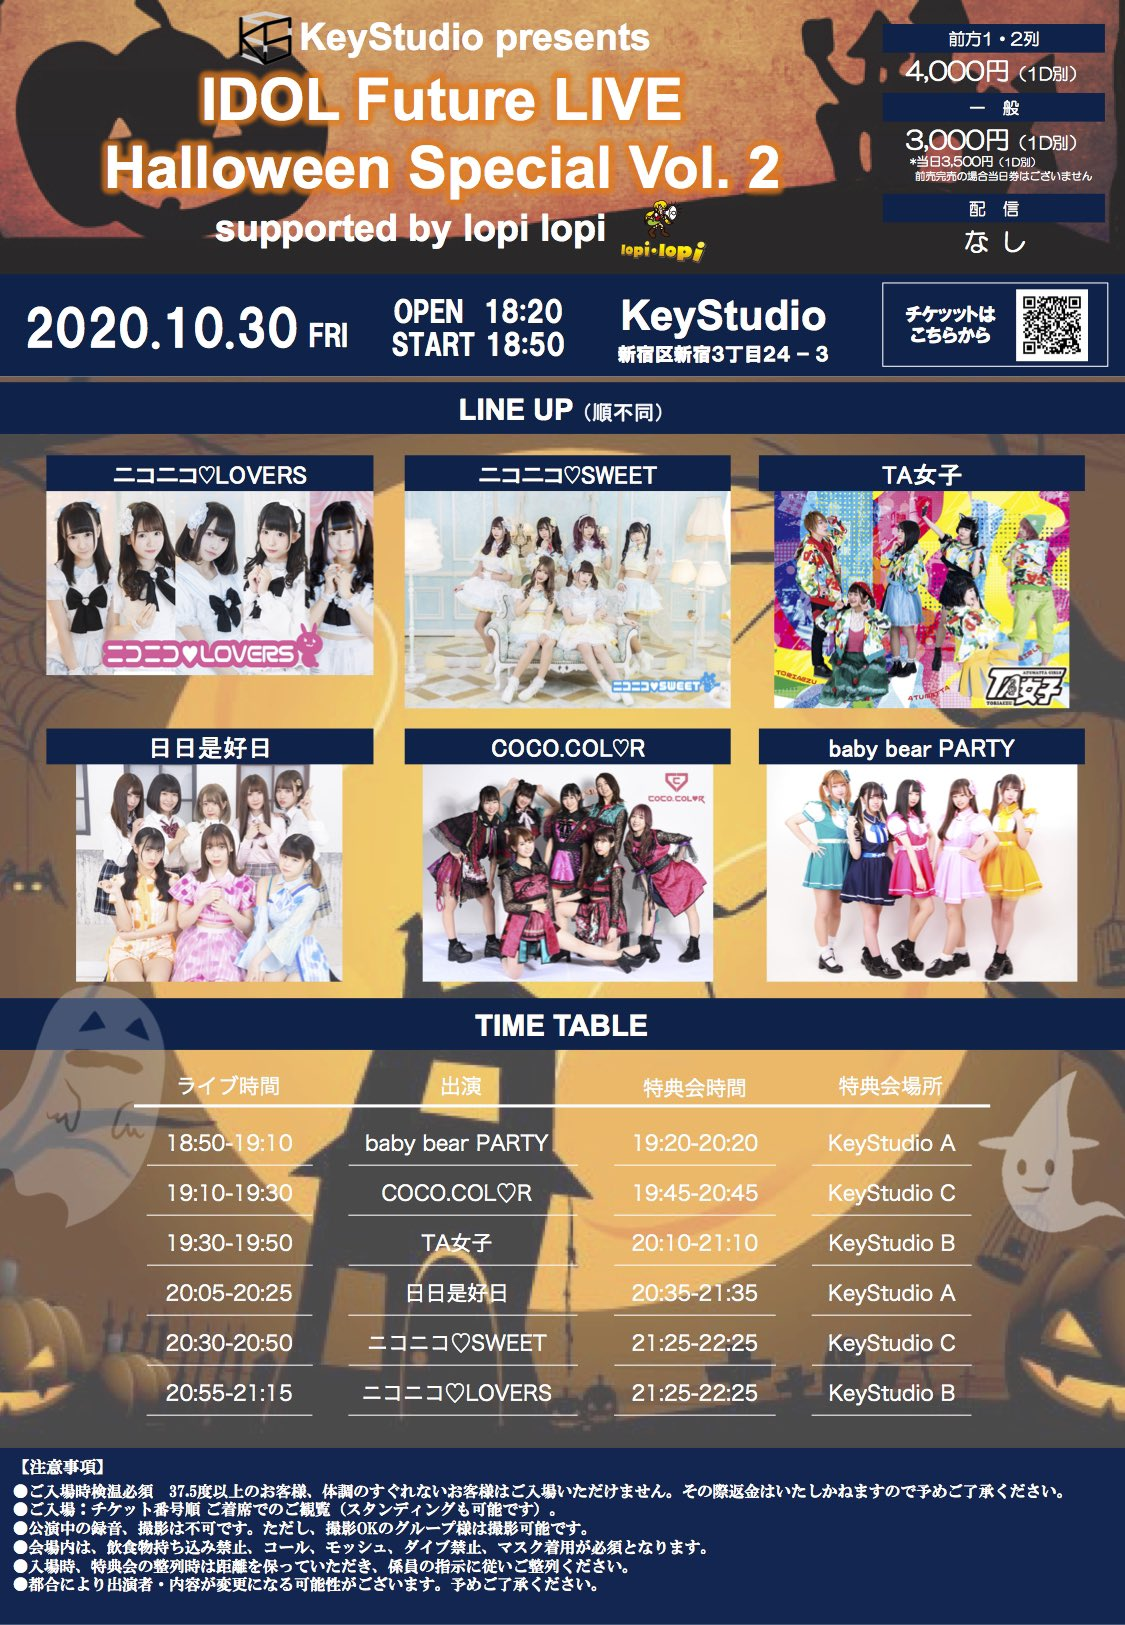 IDOL Future LIVE Halloween Special Vol.2 supported by lopi lopi